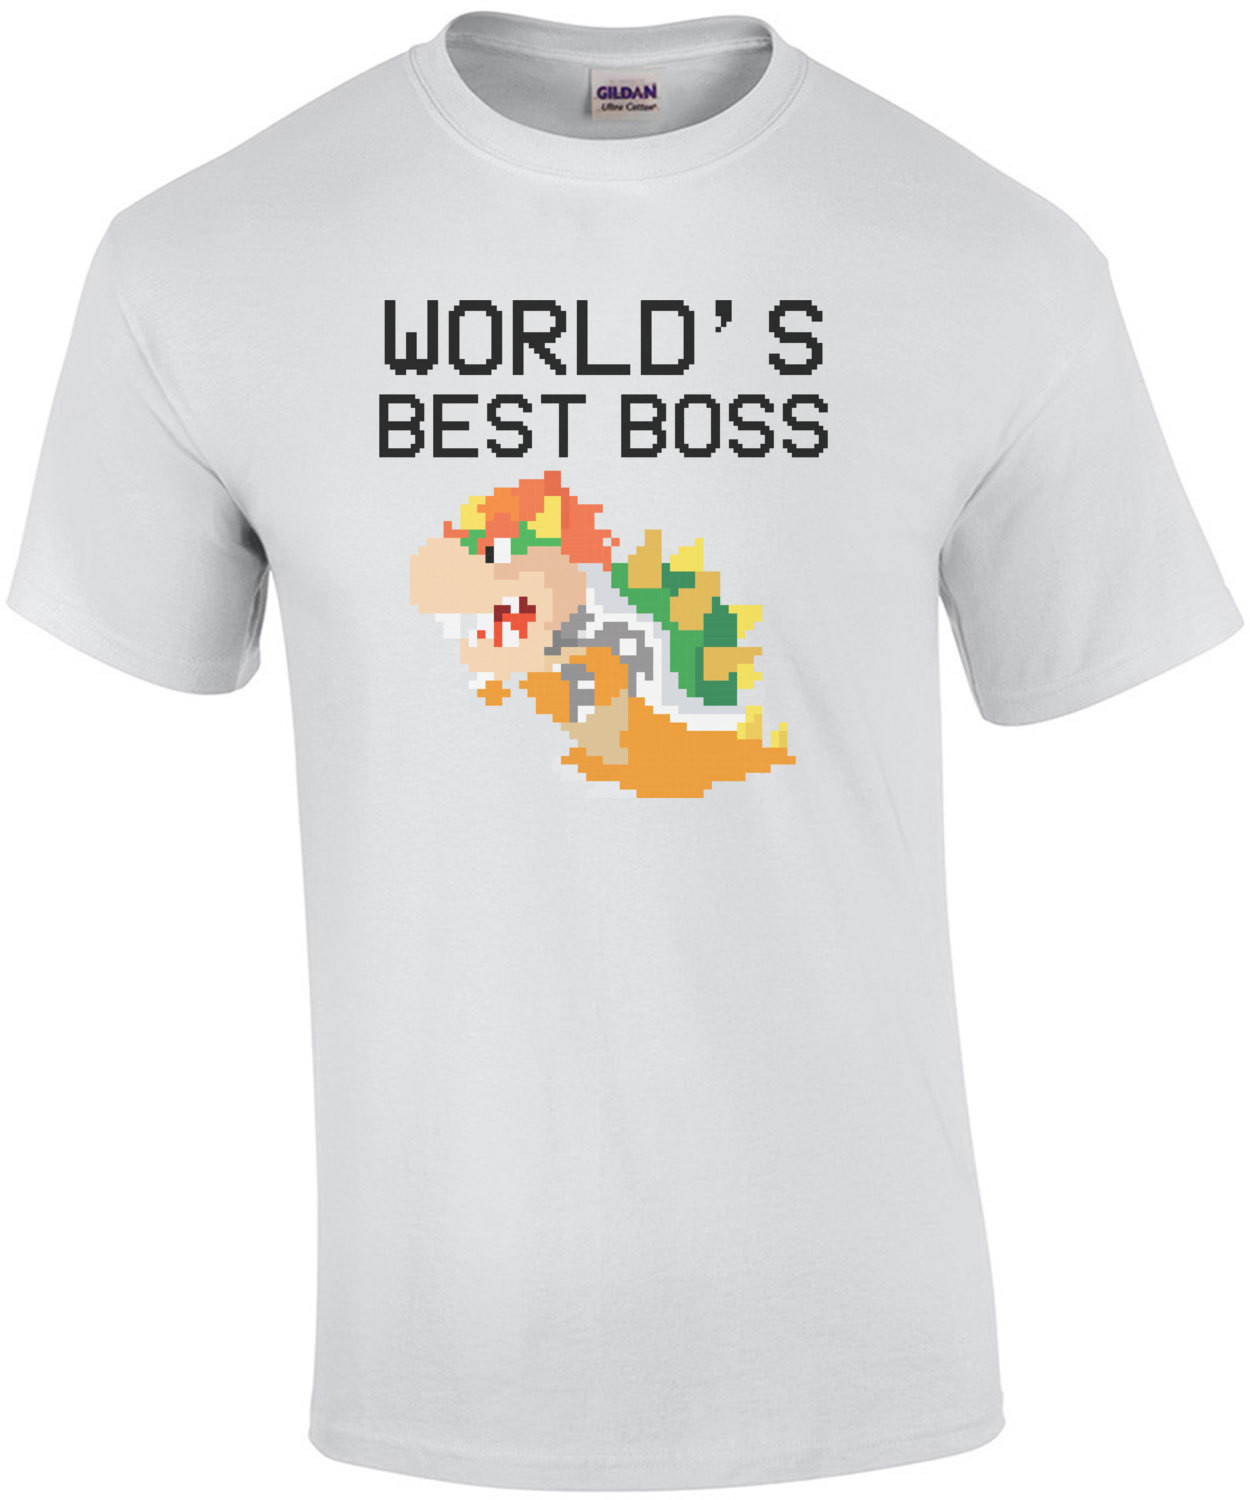 World's Best Boss Bowser - Funny Super Mario Bros T-Shirt - Cool Video Game Shirt